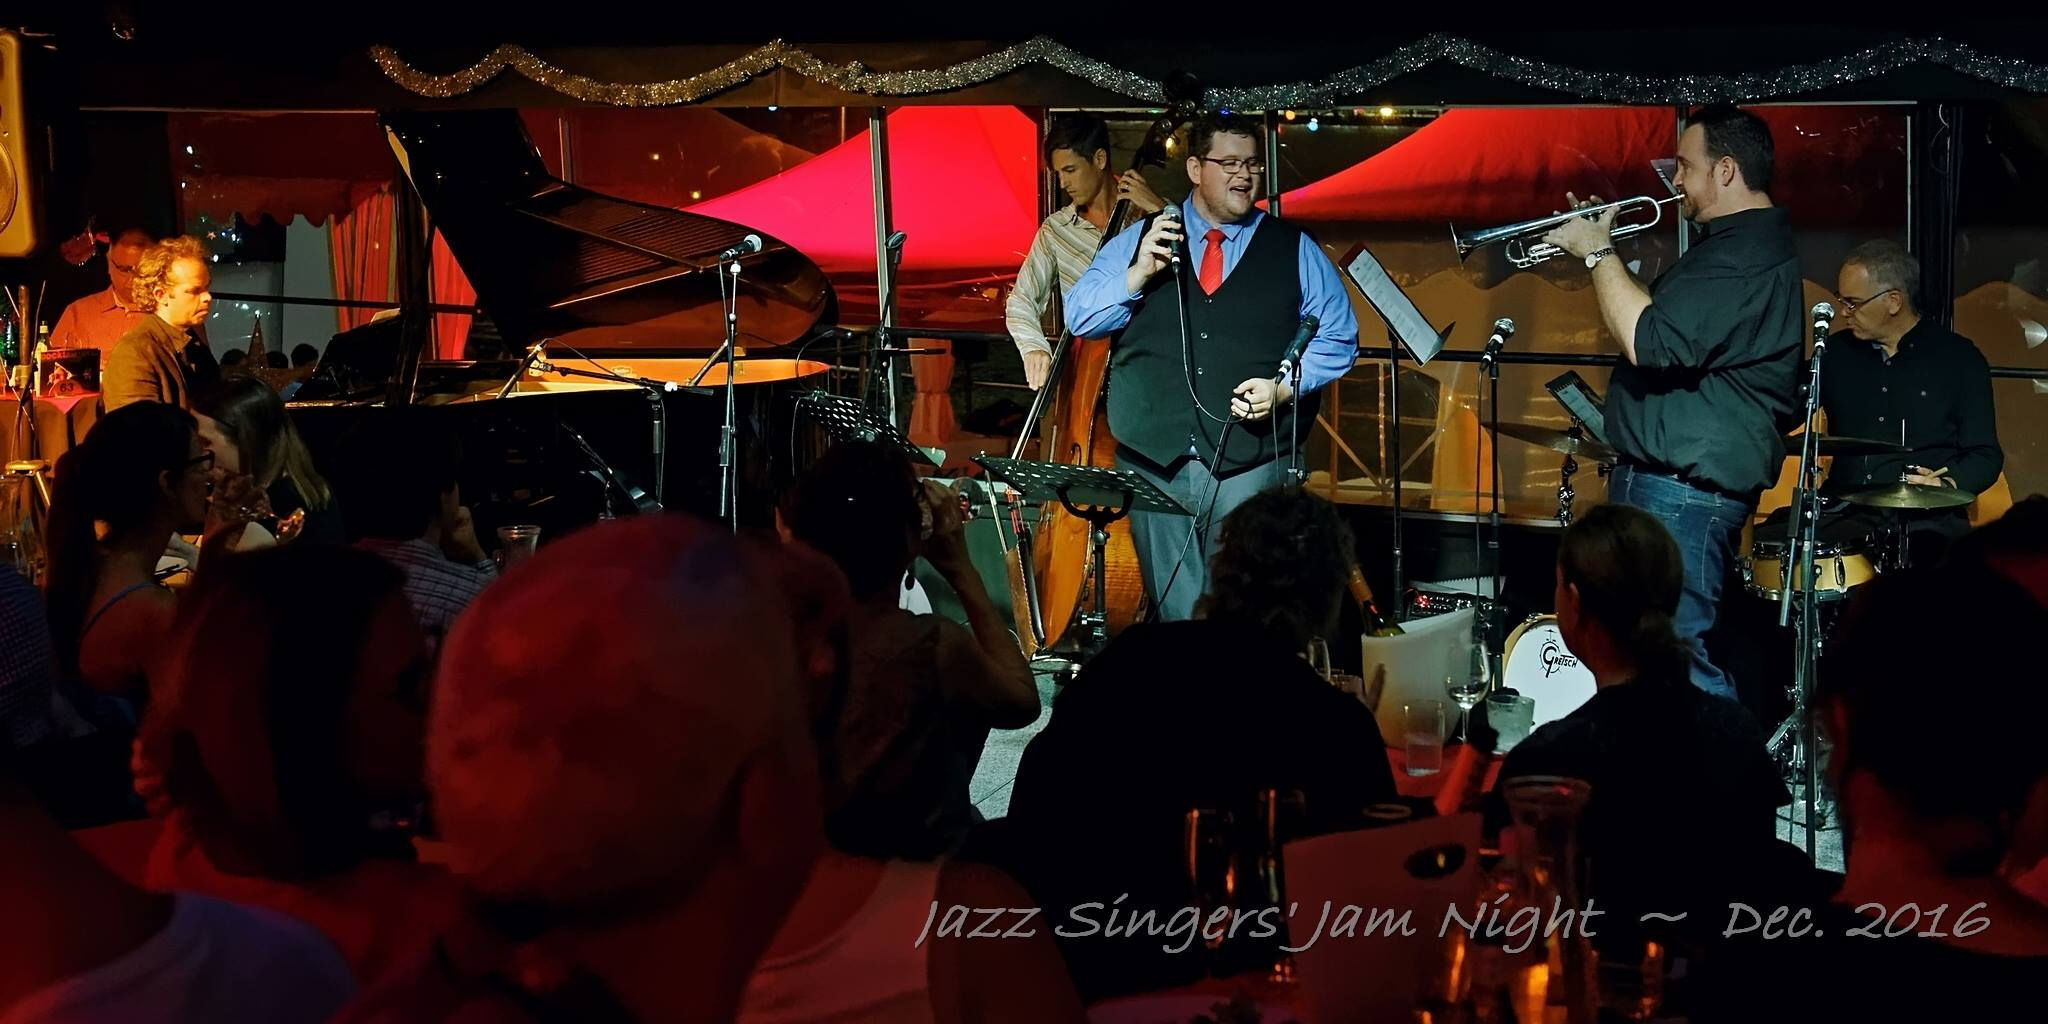 Jazz Singers Jam Night Dec 2016